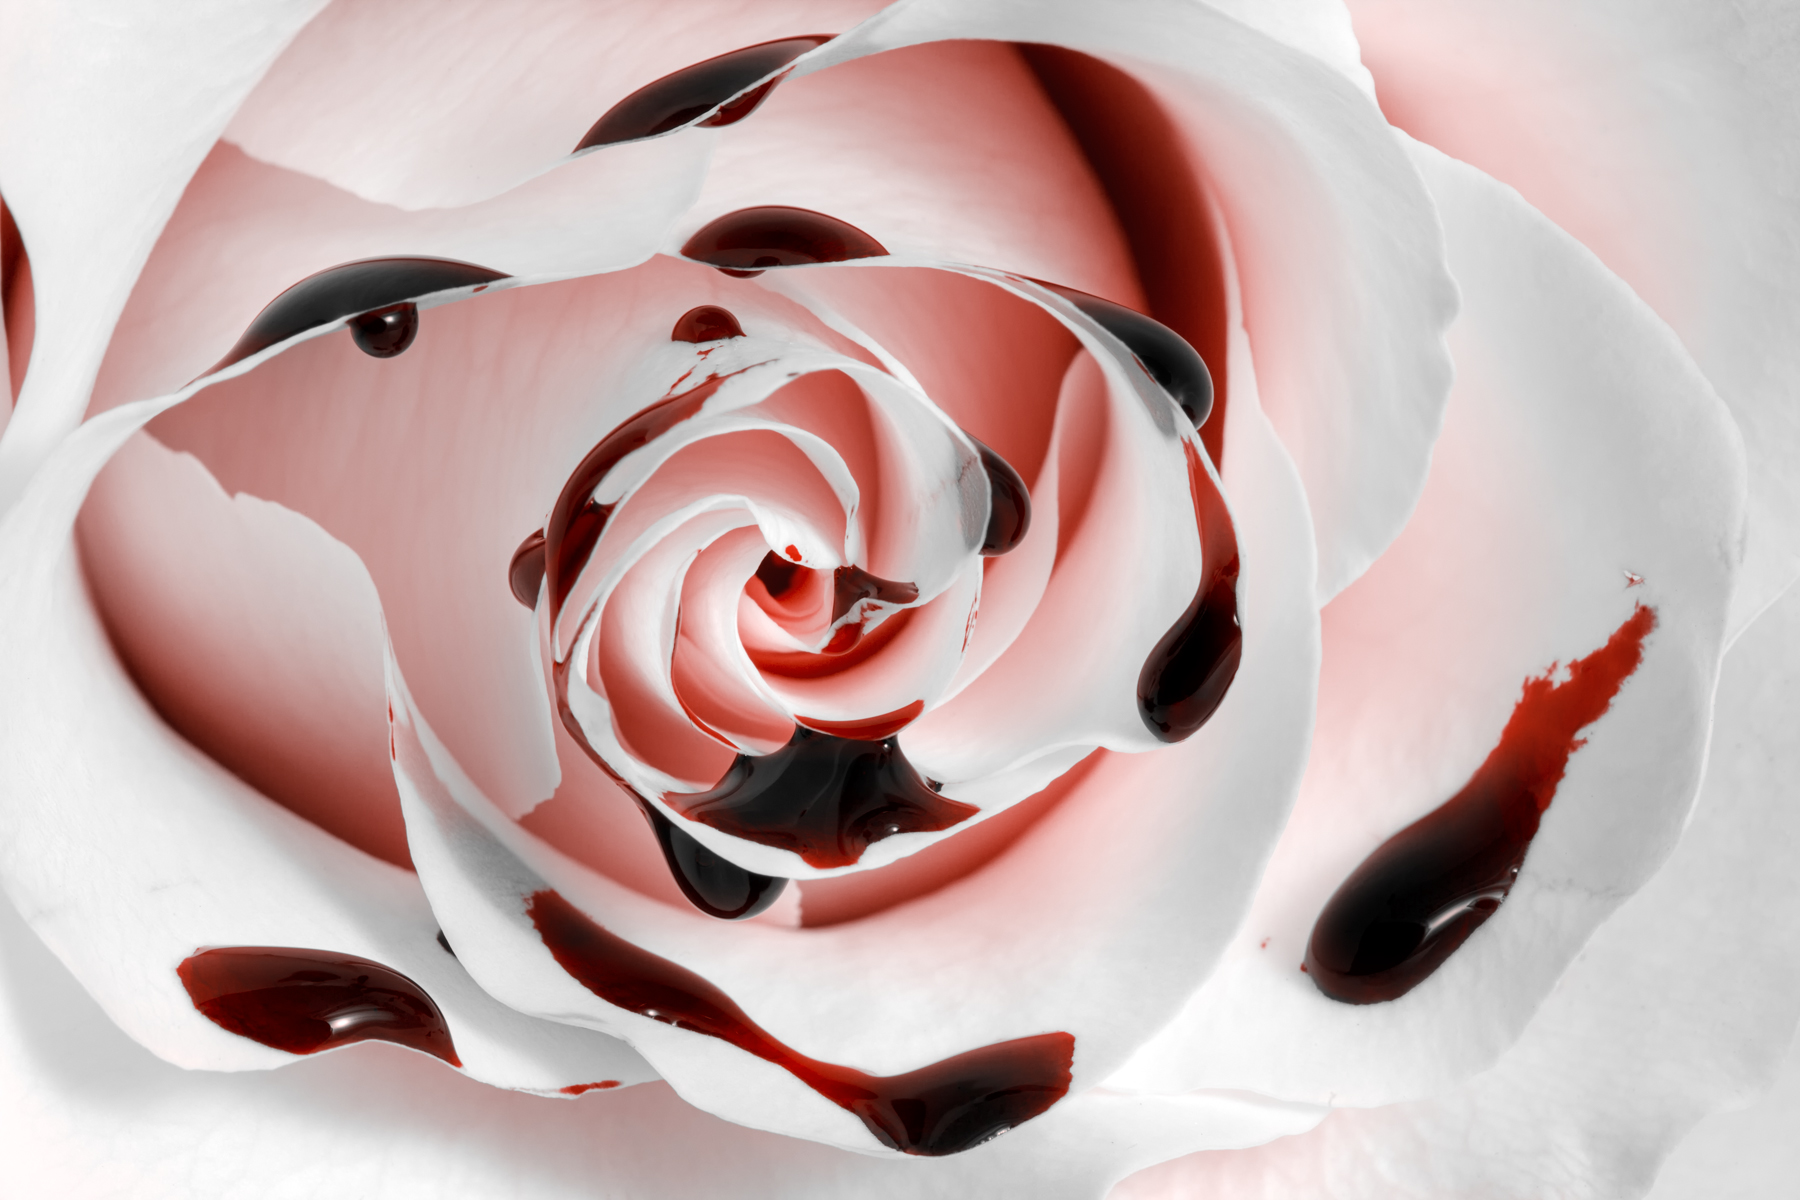 Blood Rose Macro - HDR, Pure, Picture, Purity, Red, HQ Photo